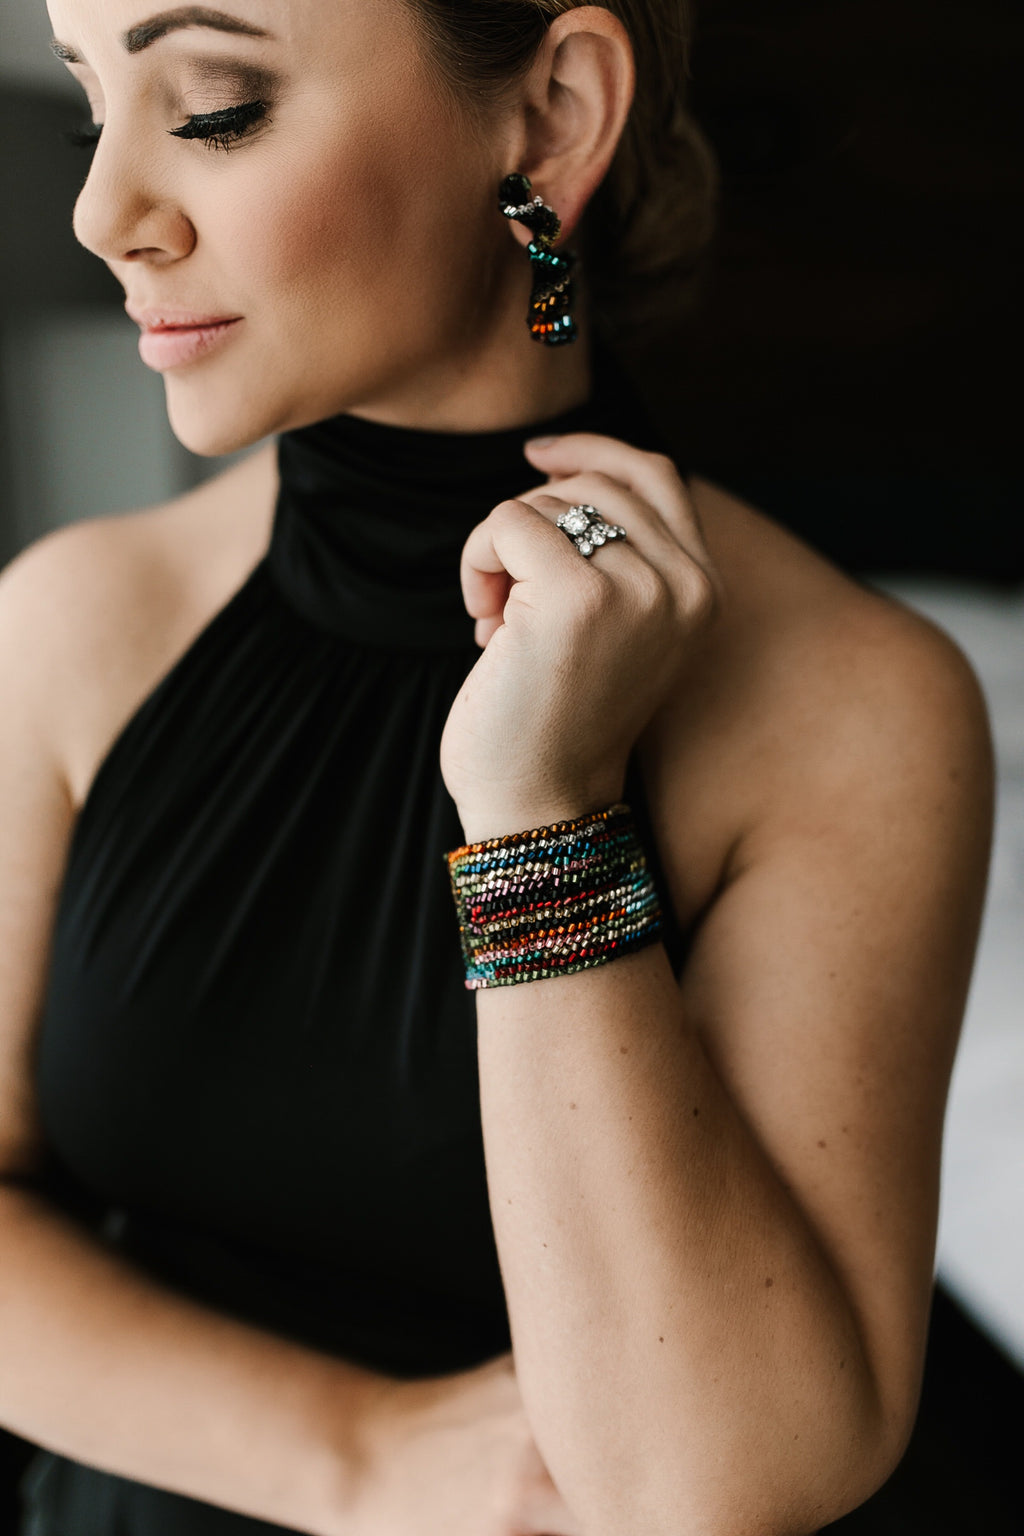 Grace Beaded Cuff Bracelet - Black/Rainbow